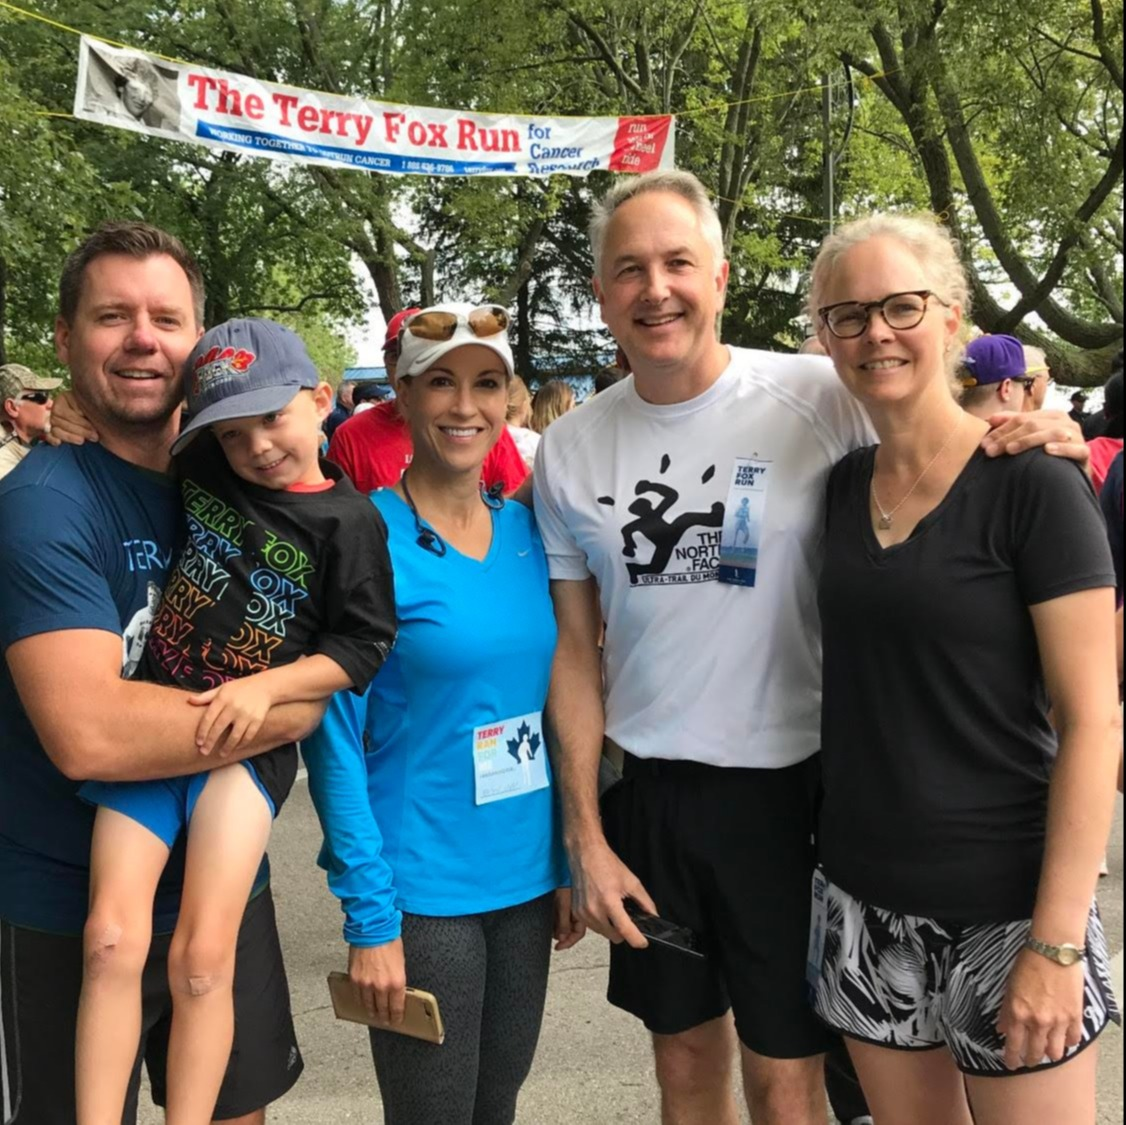 Cornwall Wealth Management Participates at The Terry Fox Run  Thumbnail